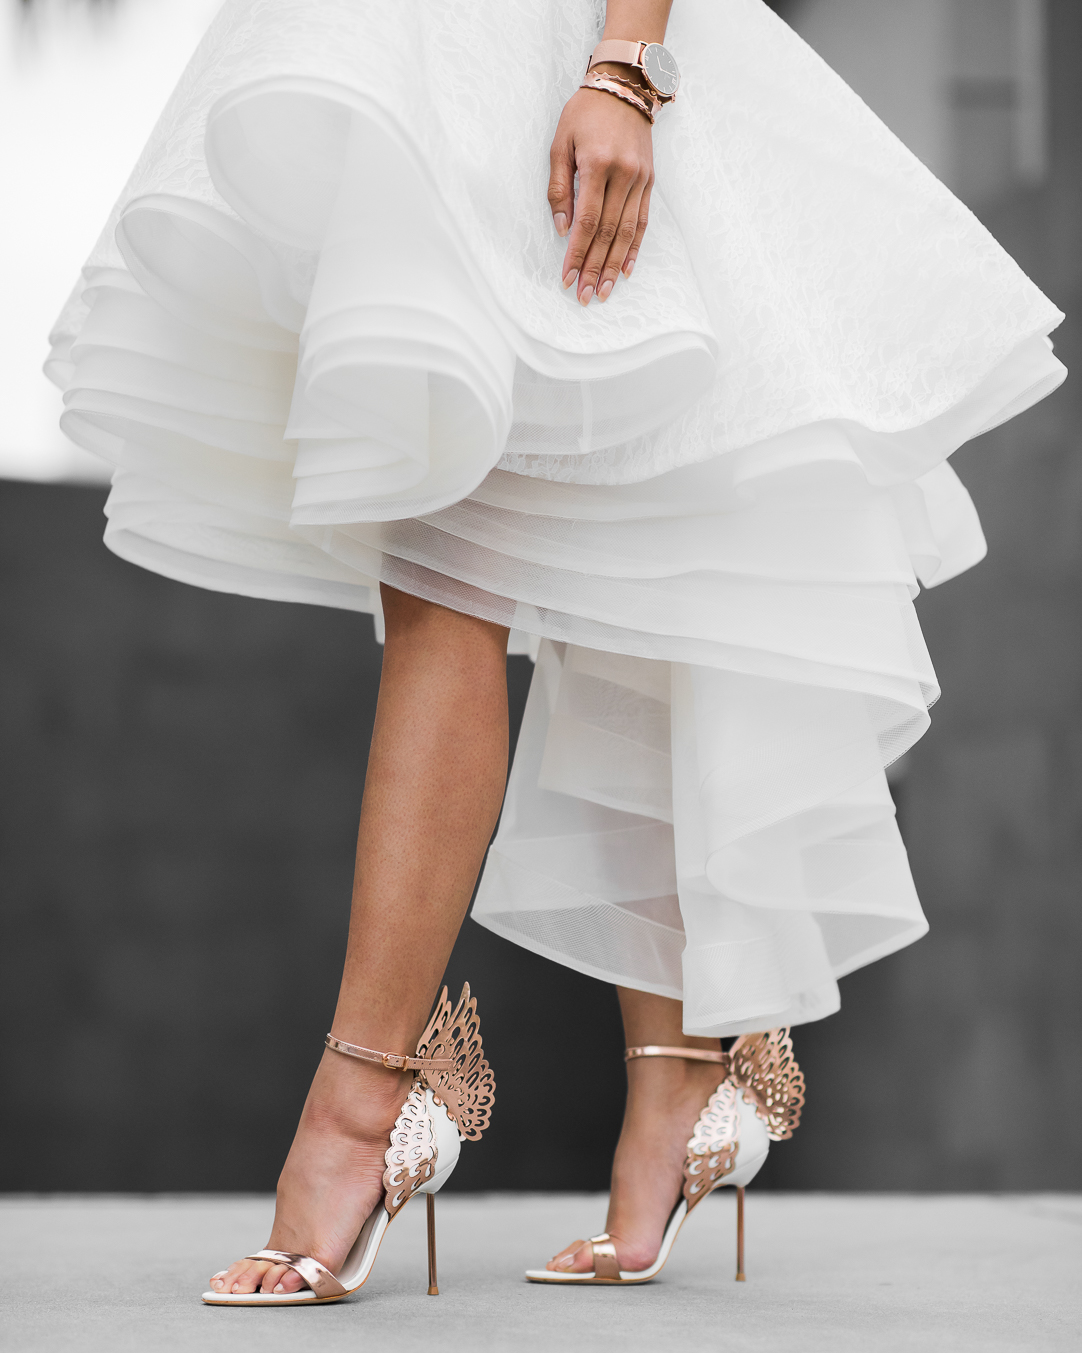 Micah-Gianneli-White-Runway-Sophia-Webster-Luisaviaroma-White-Bridal-Fashion-Editorial-Freedom-Couture